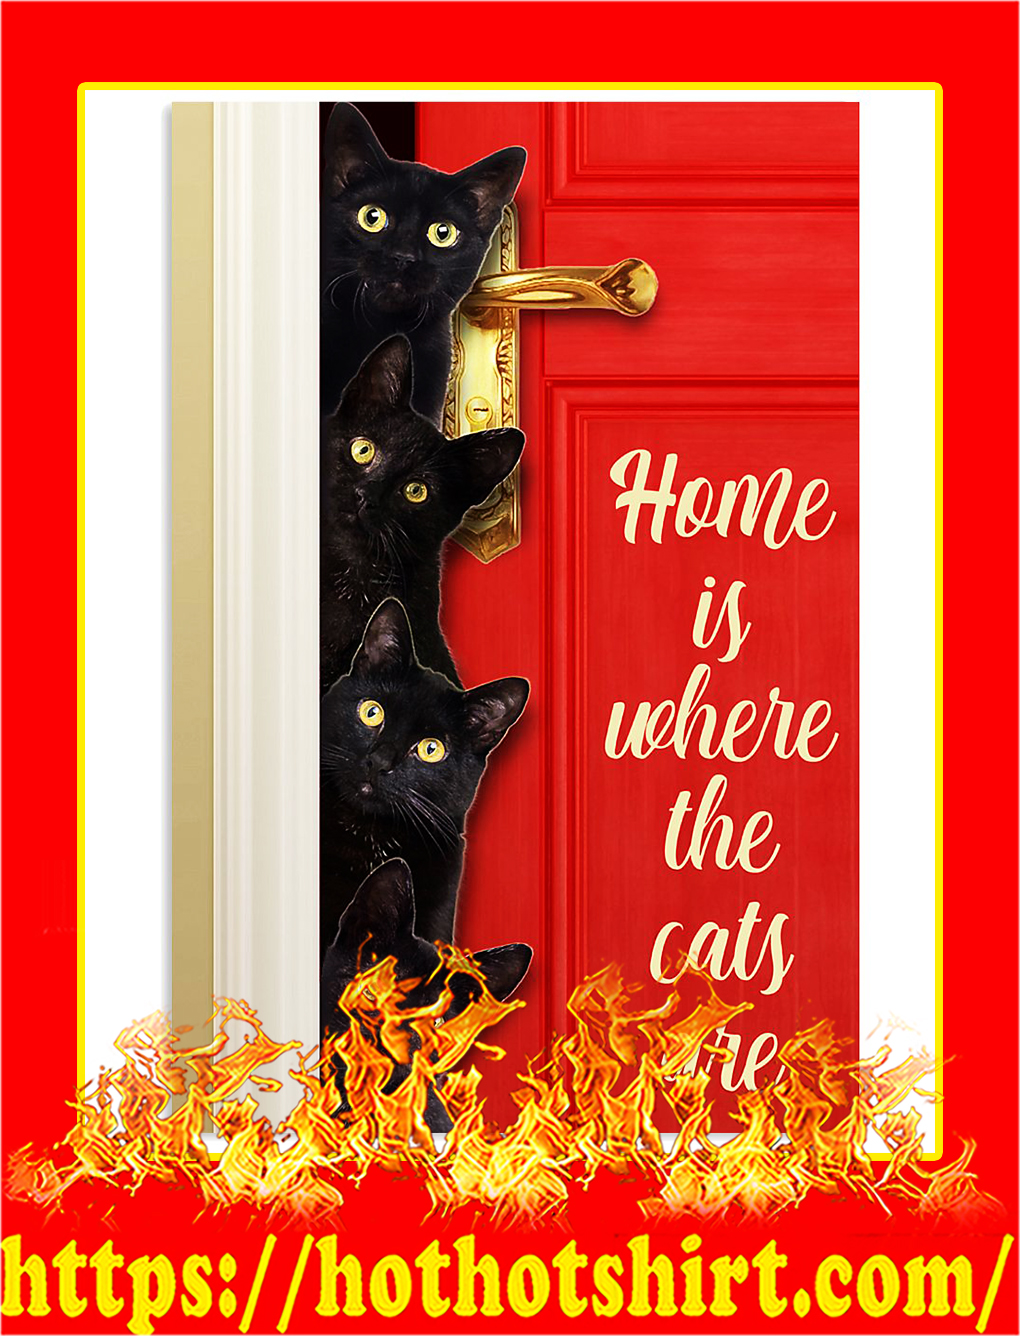 Home is where the cats are poster - A3